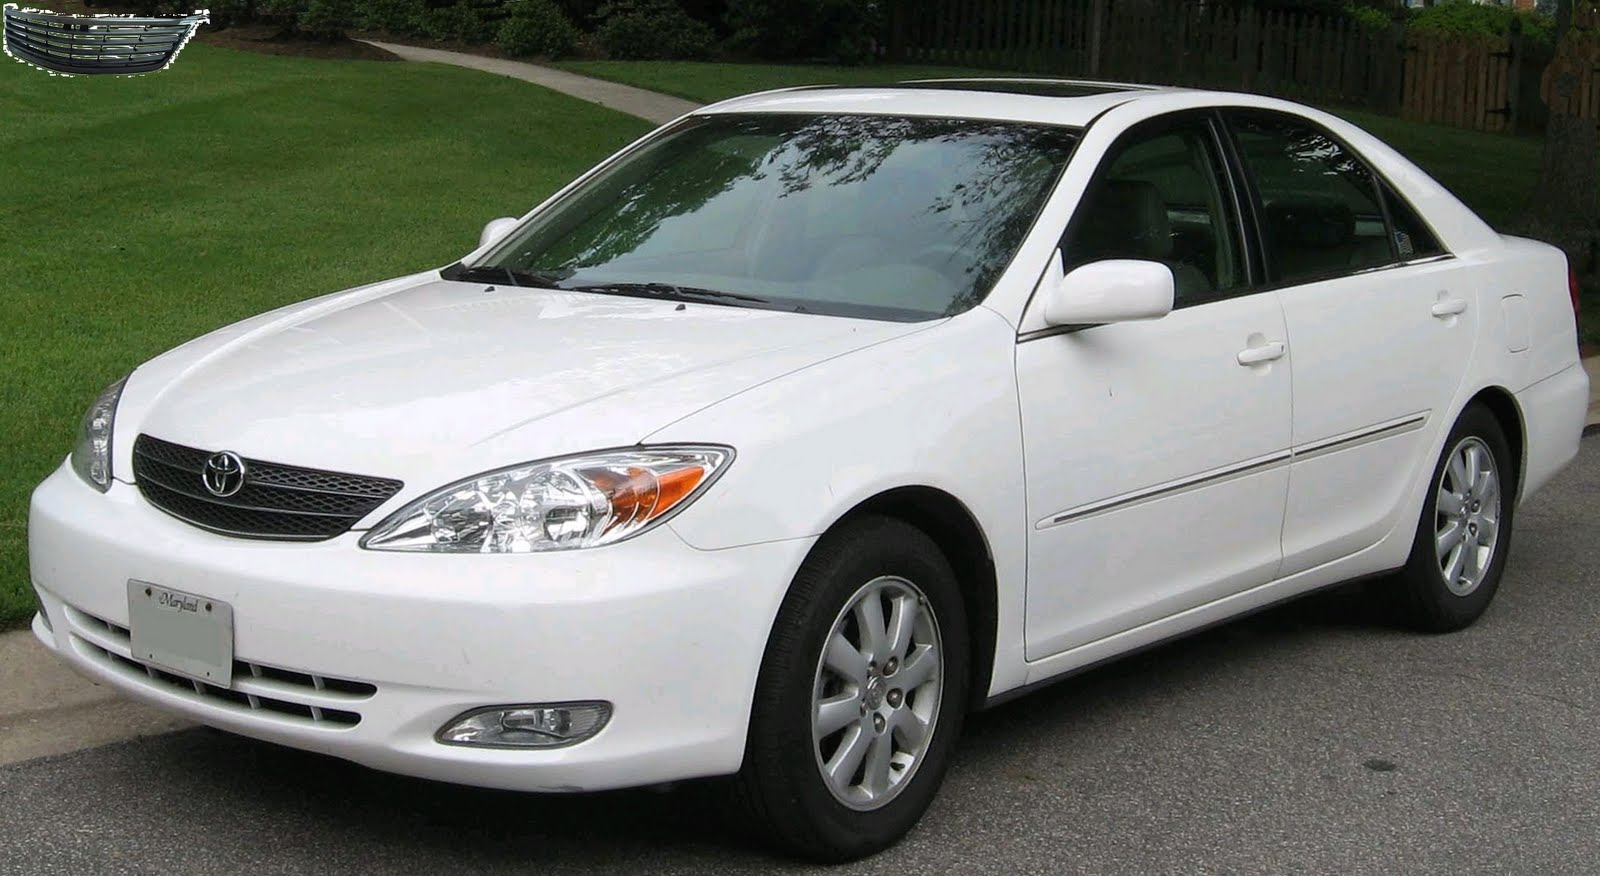 2010 Toyota Camry For Sale >> Toyota Camry 2011 Wallpapers | multiplewallpapers